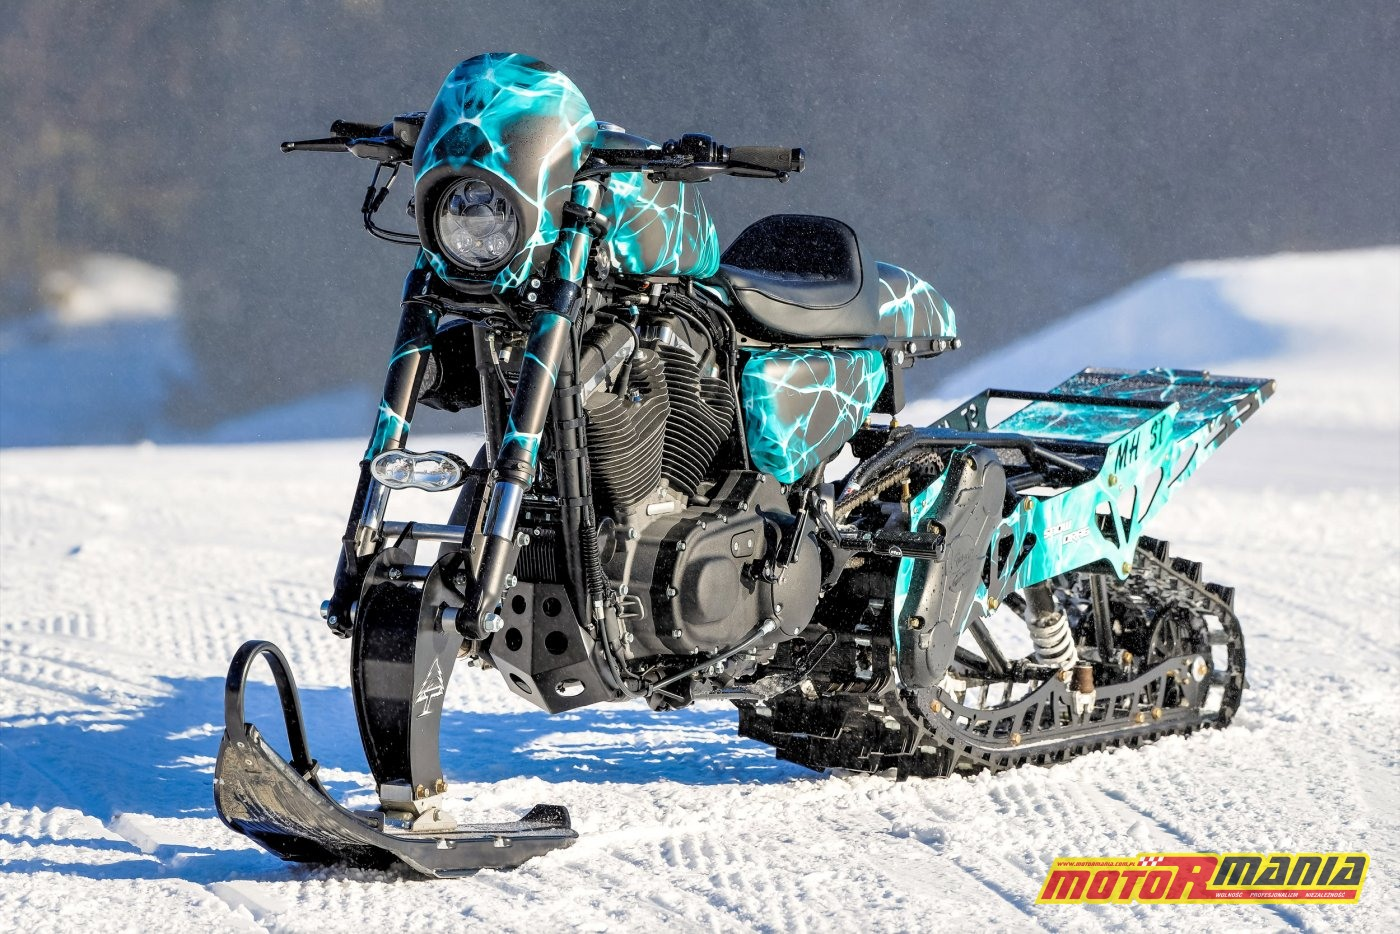 Harley Snow Drag (1)